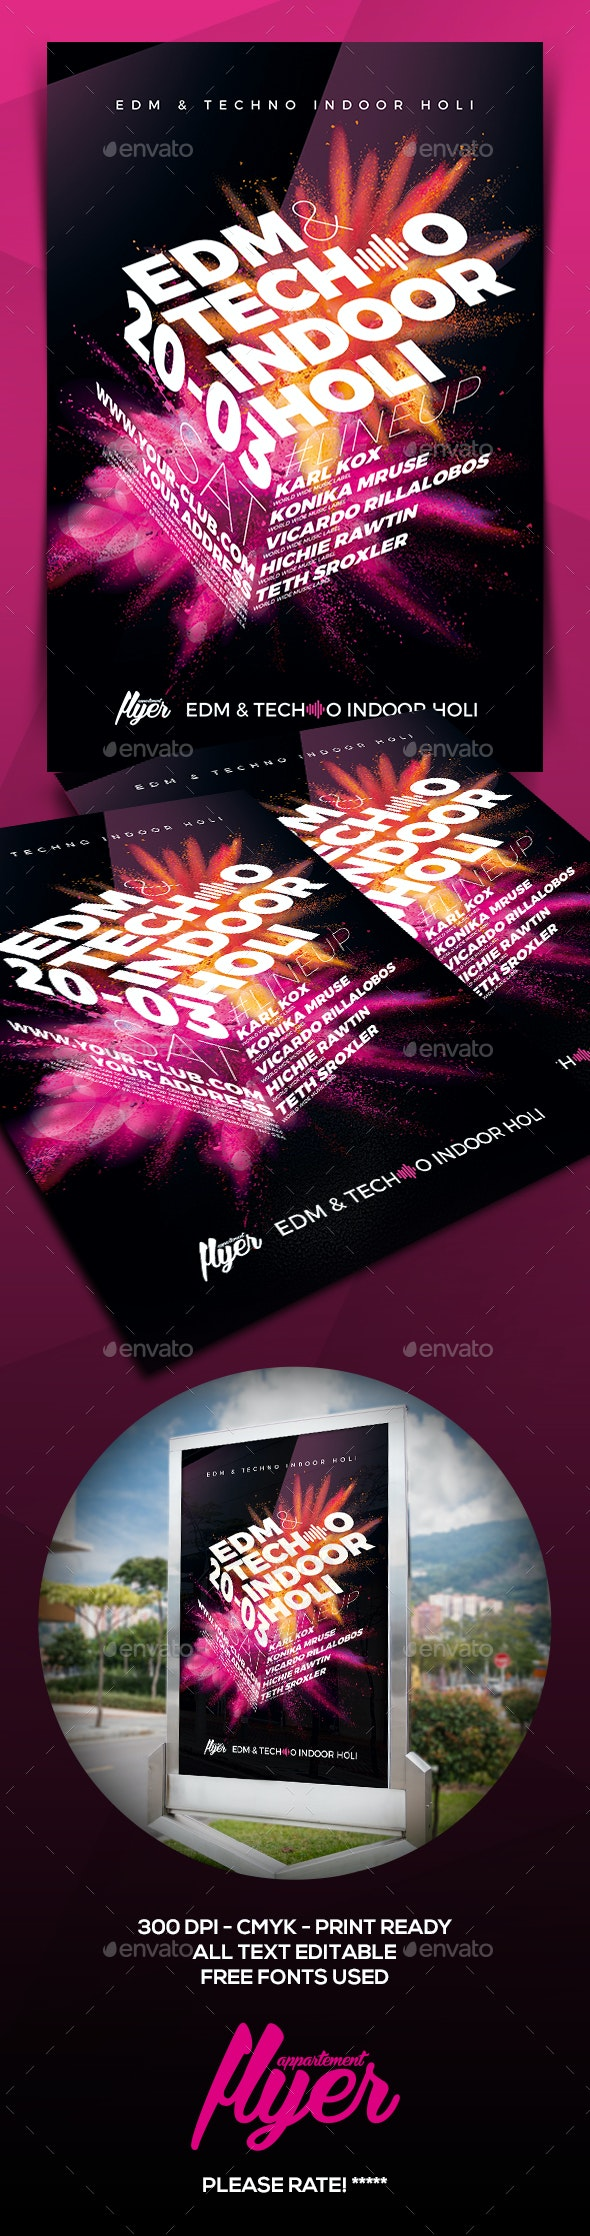 EDM & Electro Indoor Holi Flyer - Print Templates